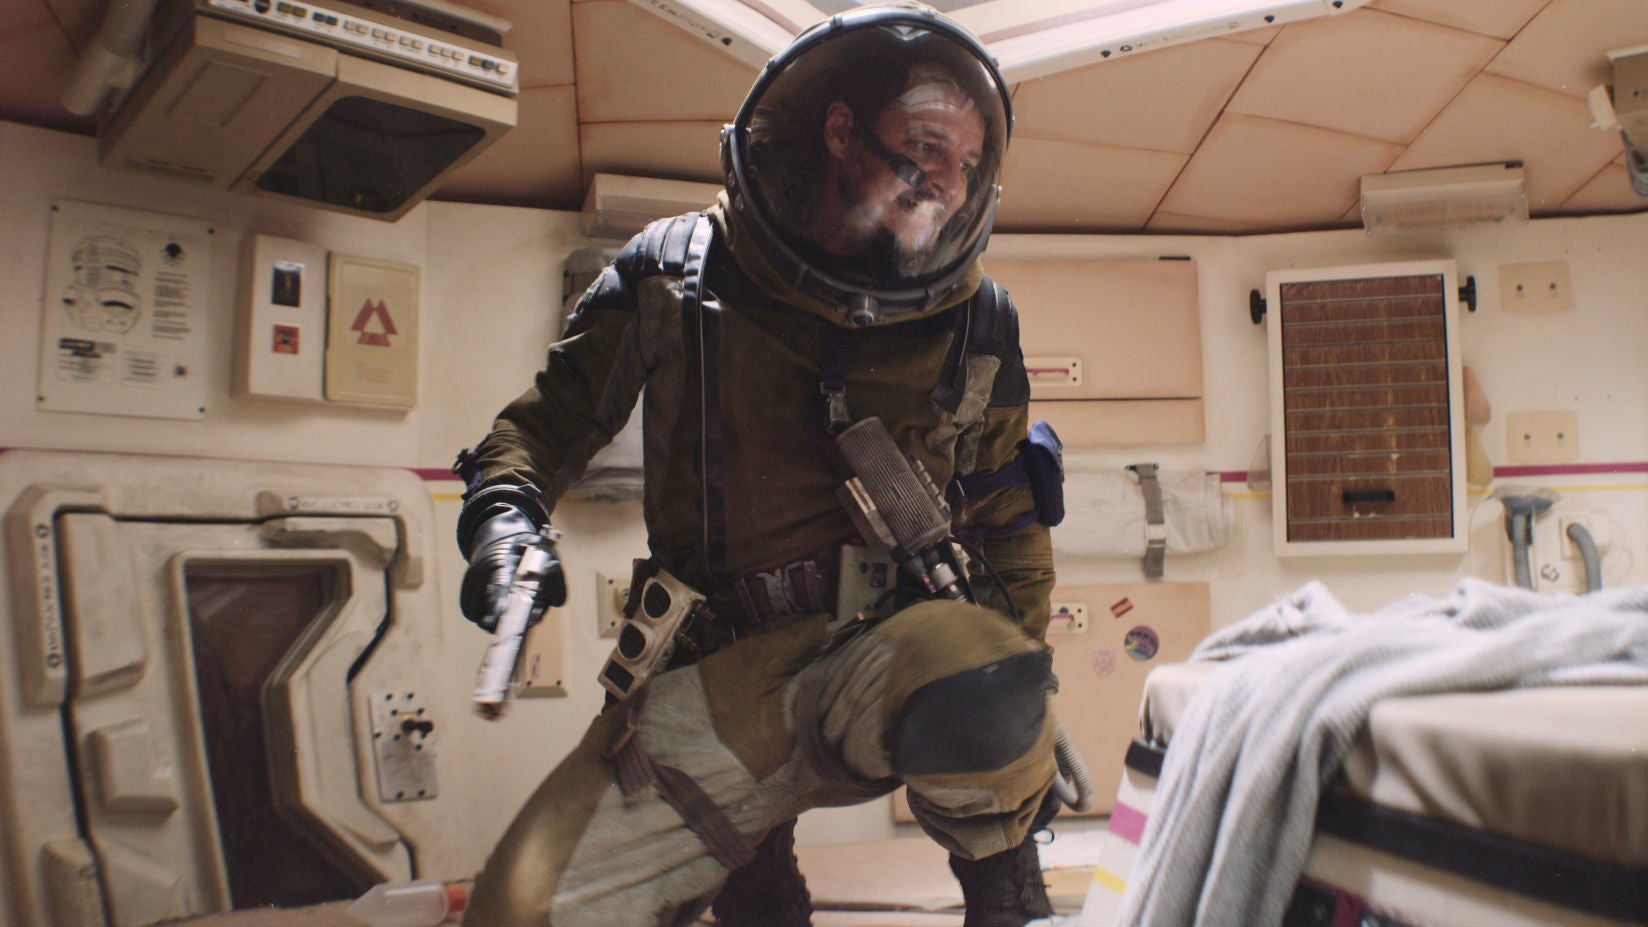 These First Images From The Scifi Film Prospect Are Very Intriguing